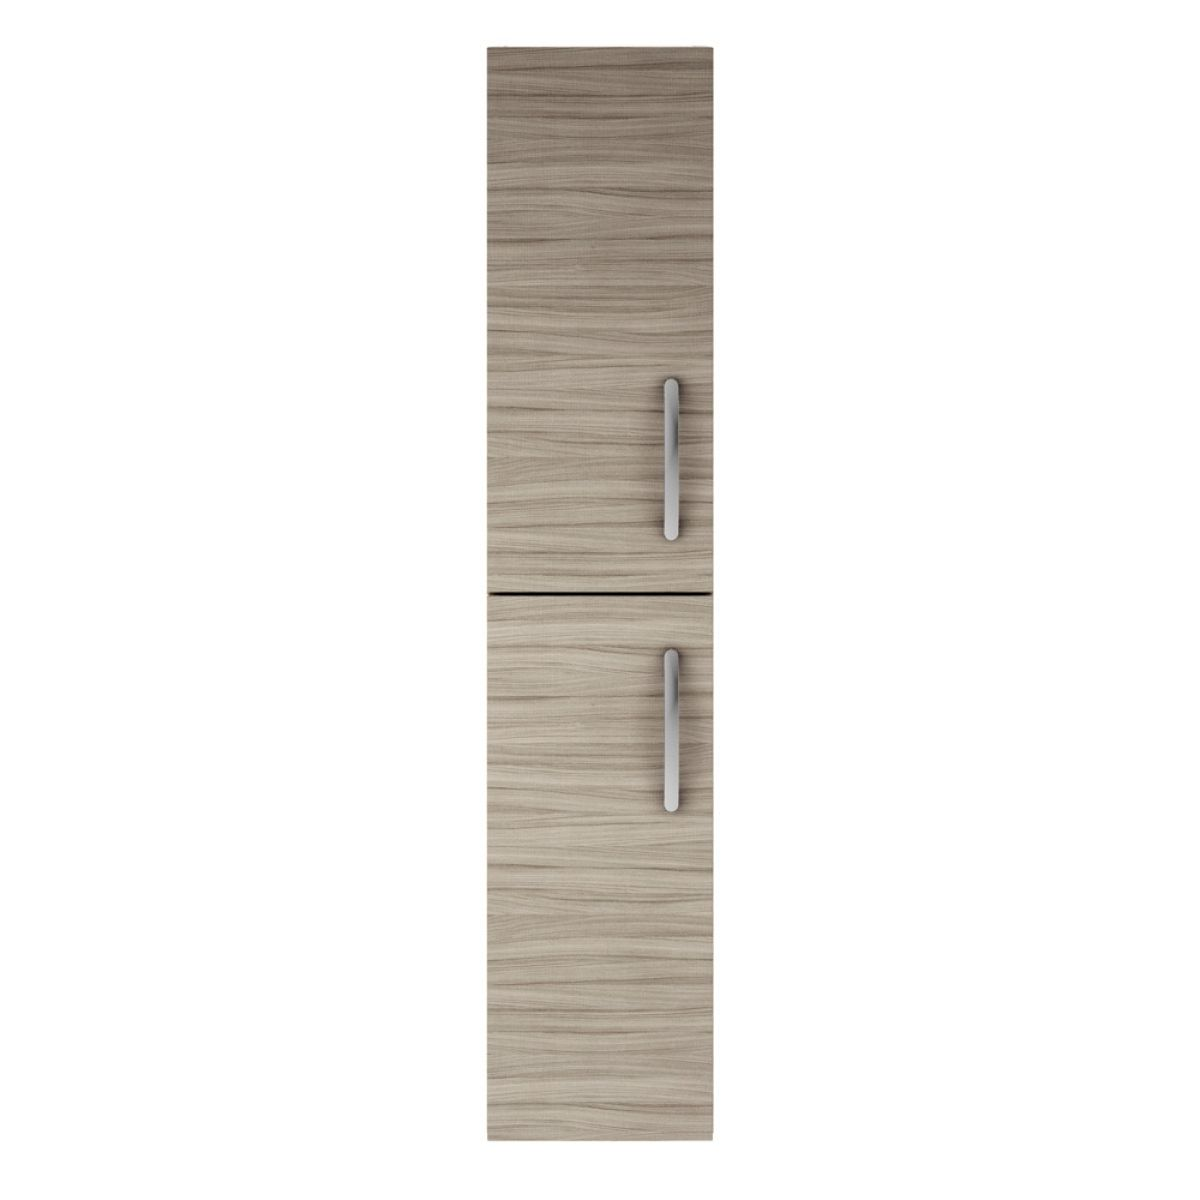 Premier Athena Driftwood Double Door Tall Unit 300mm